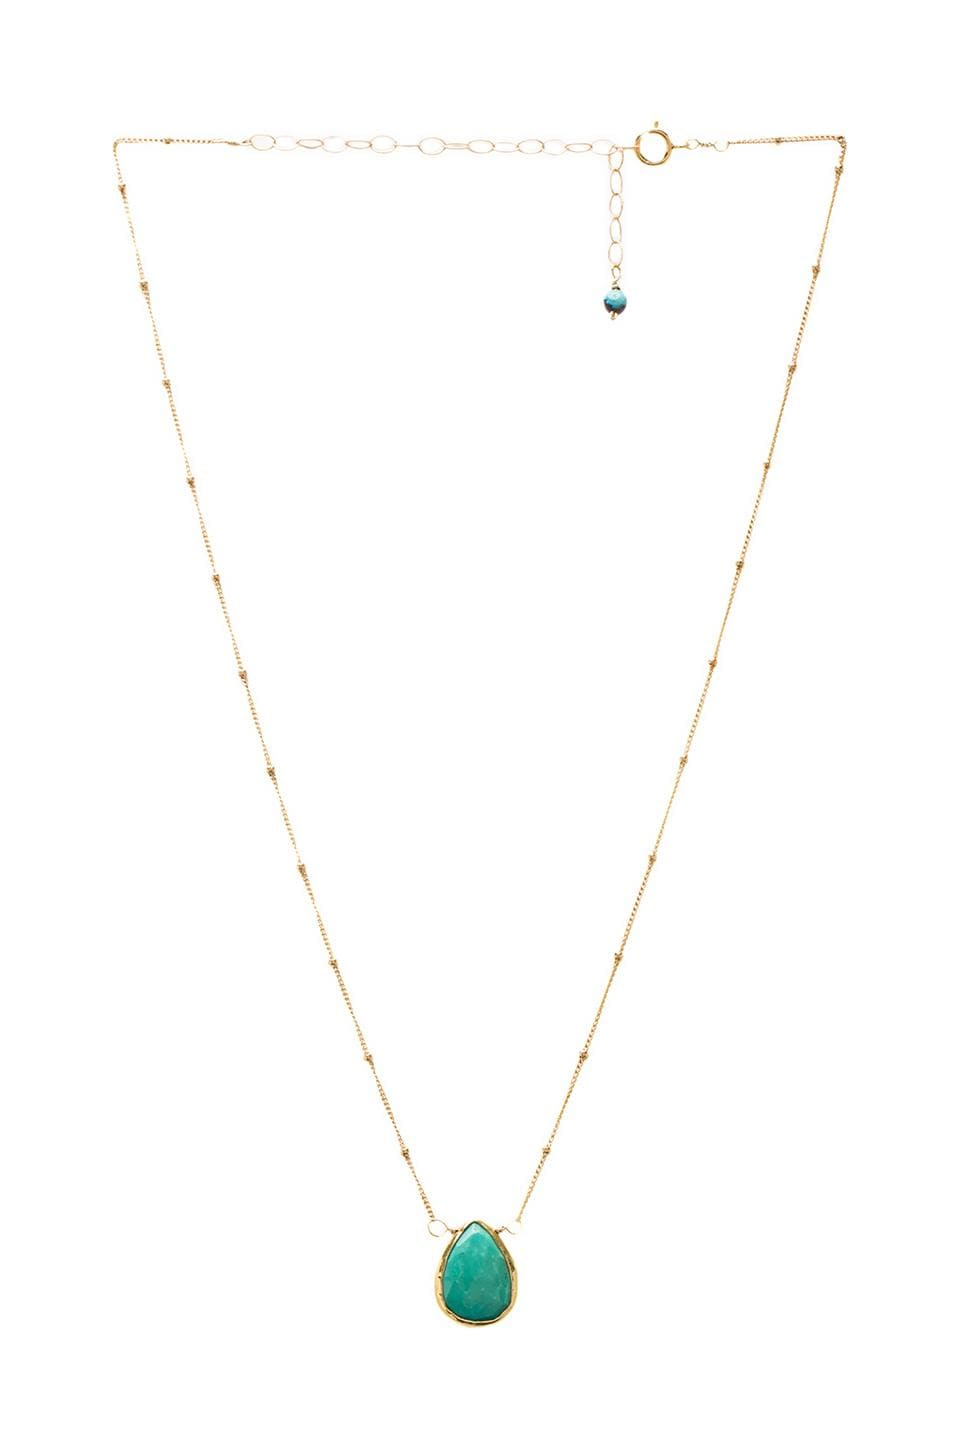 Natalie B Jewelry Natalie B Stone Drops Necklace in Turquoise